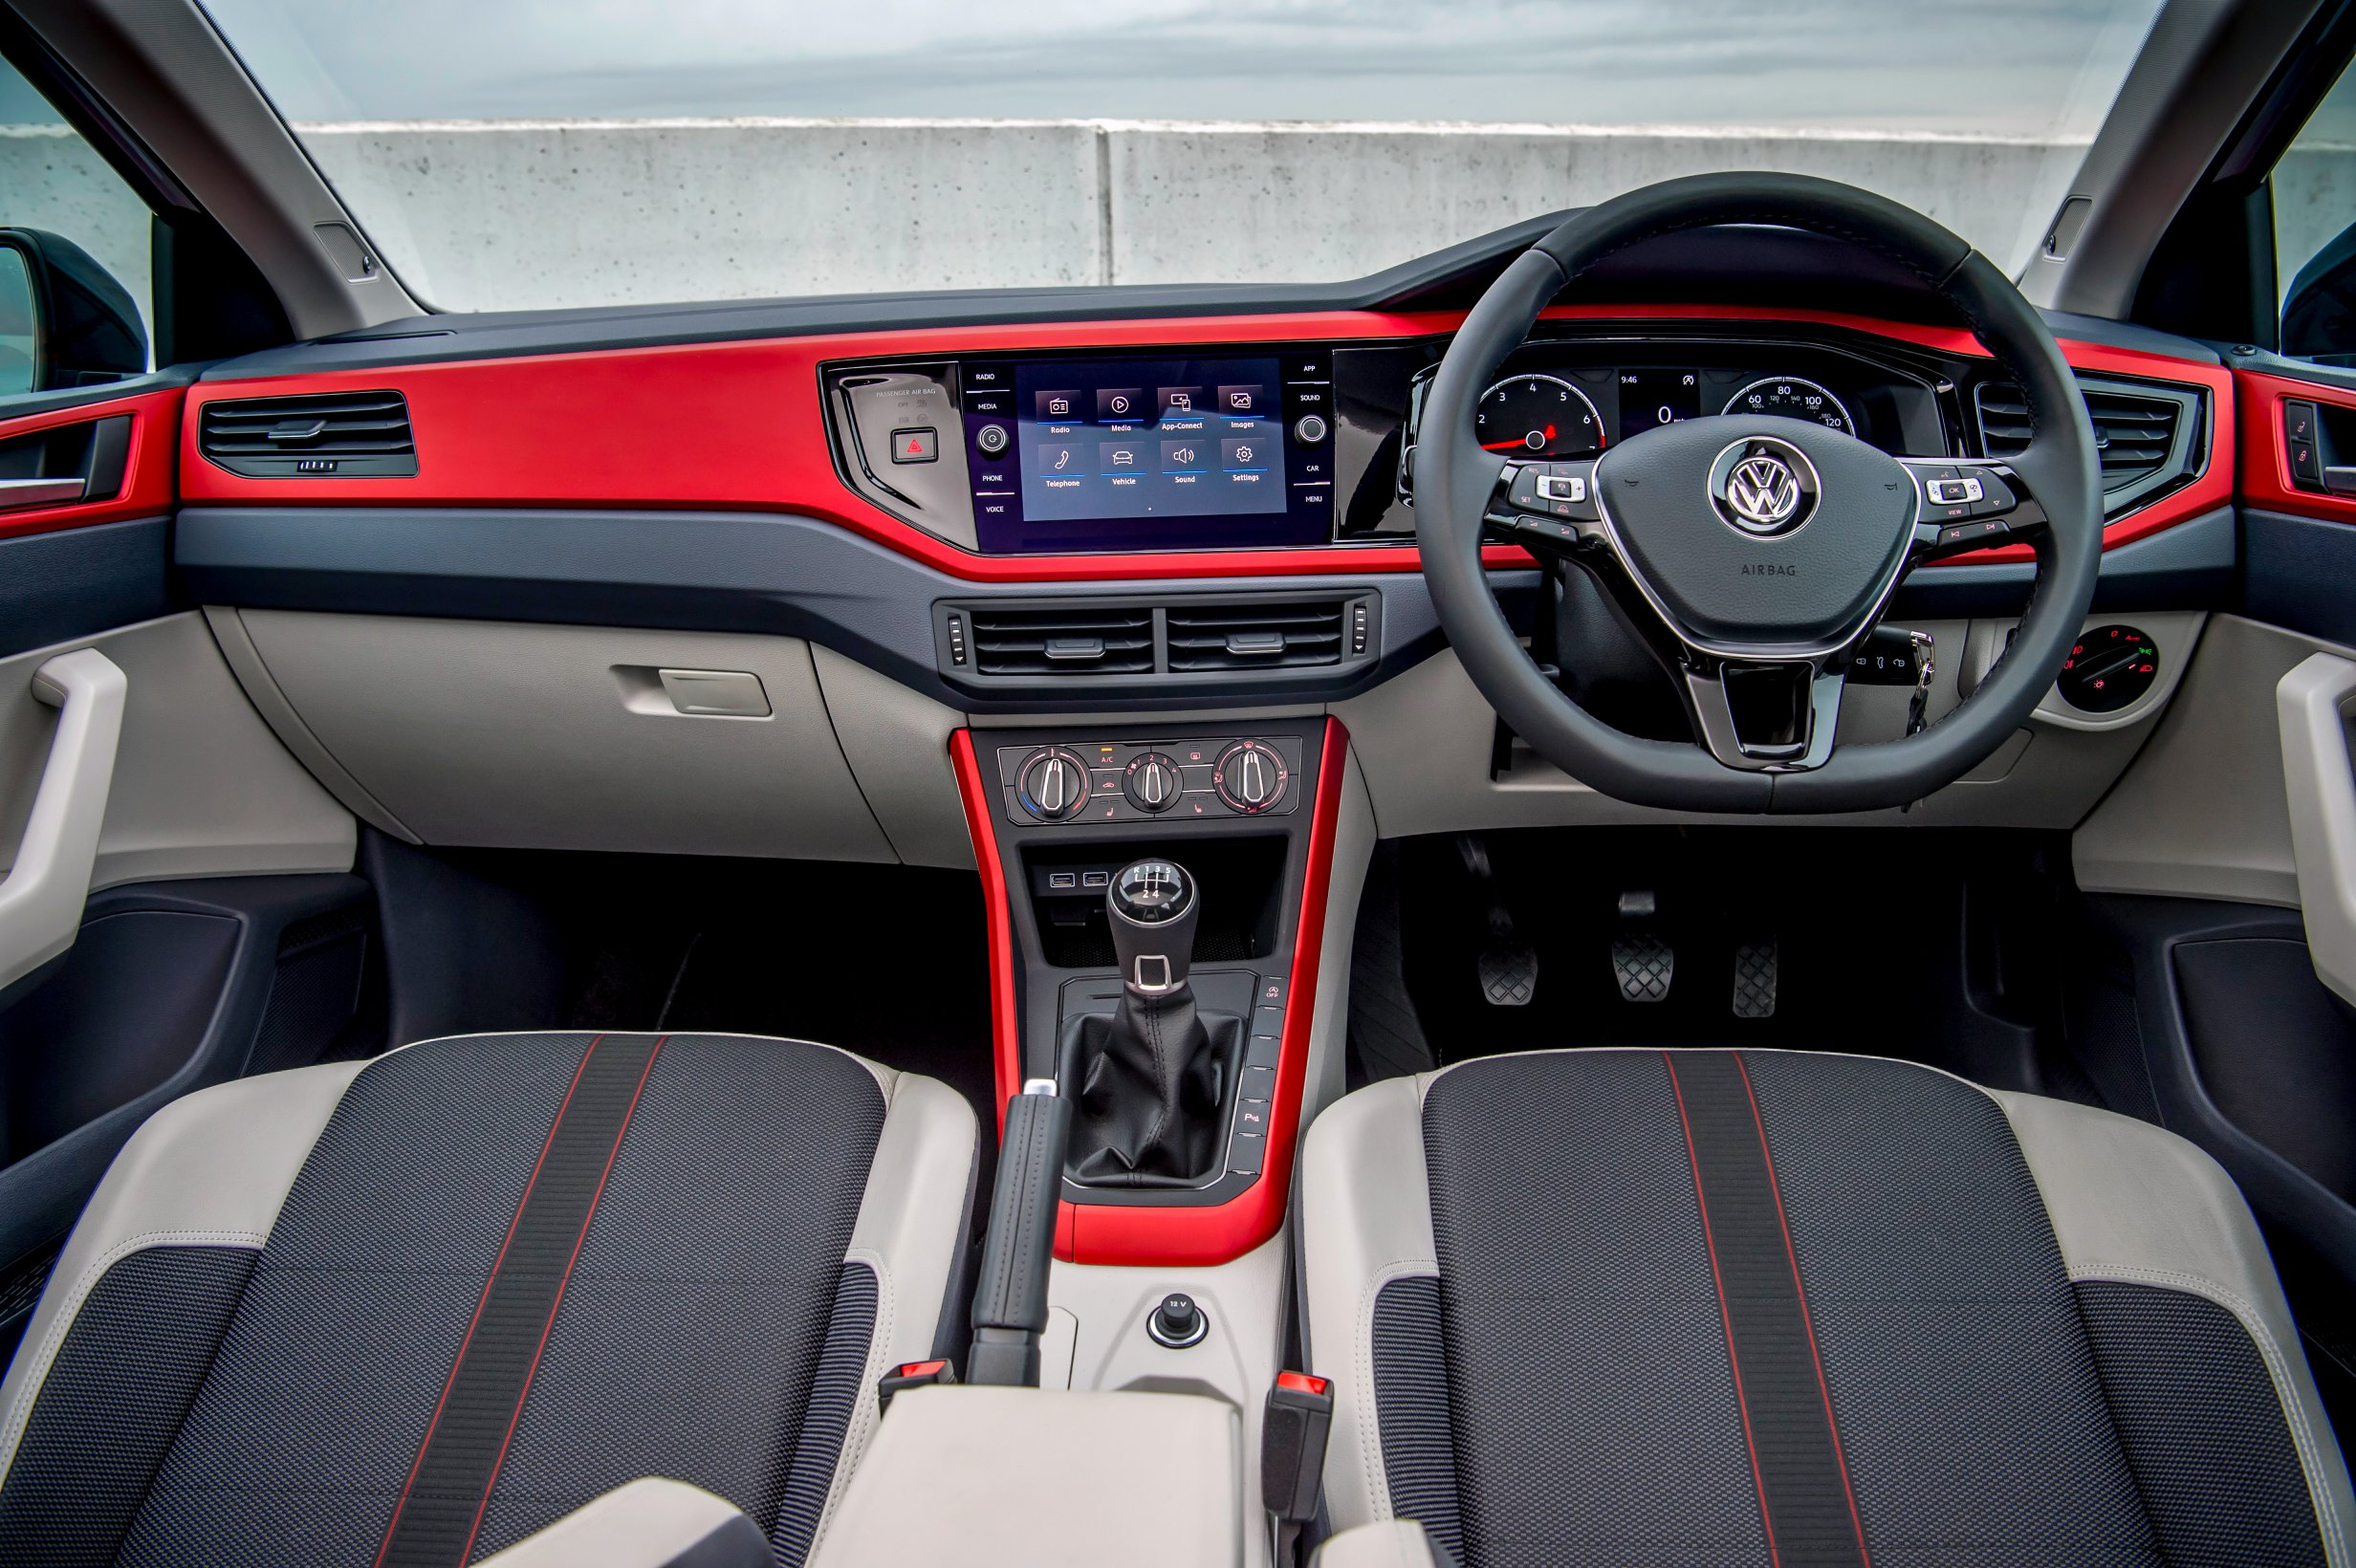 Front interior of new red Volkswagen Polo Beats model